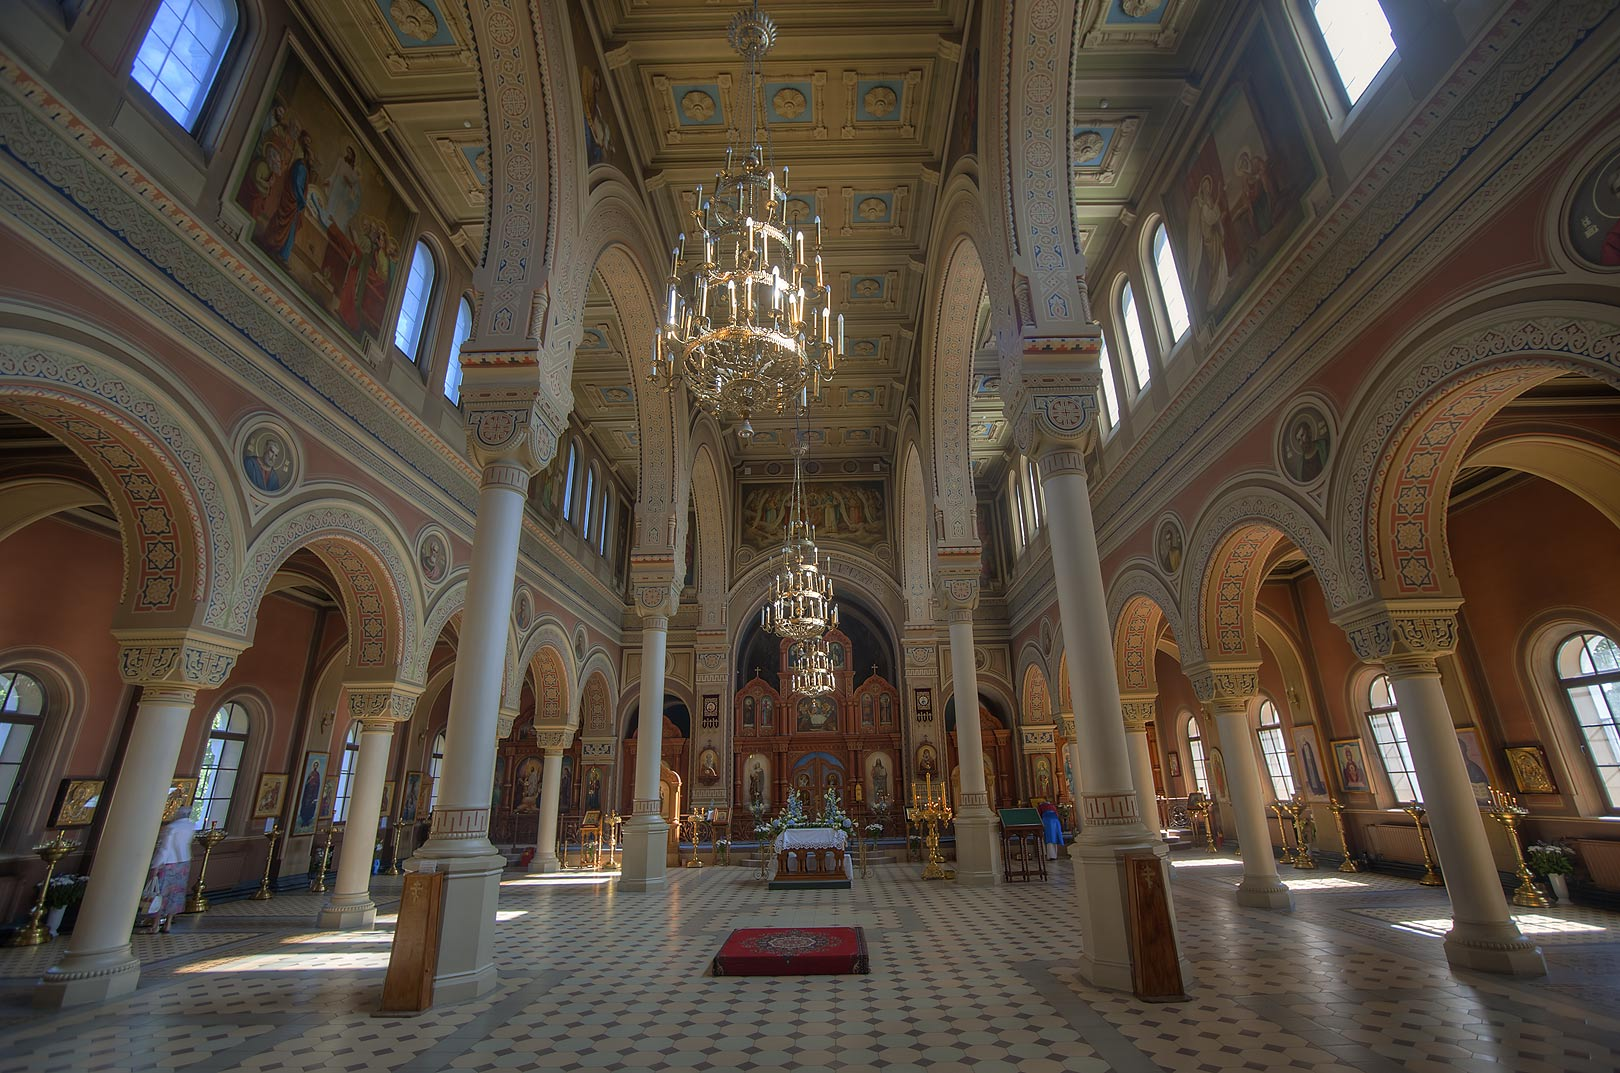 Interior of Vladimir Cathedral (orthodox church...part of St.Petersburg, Russia